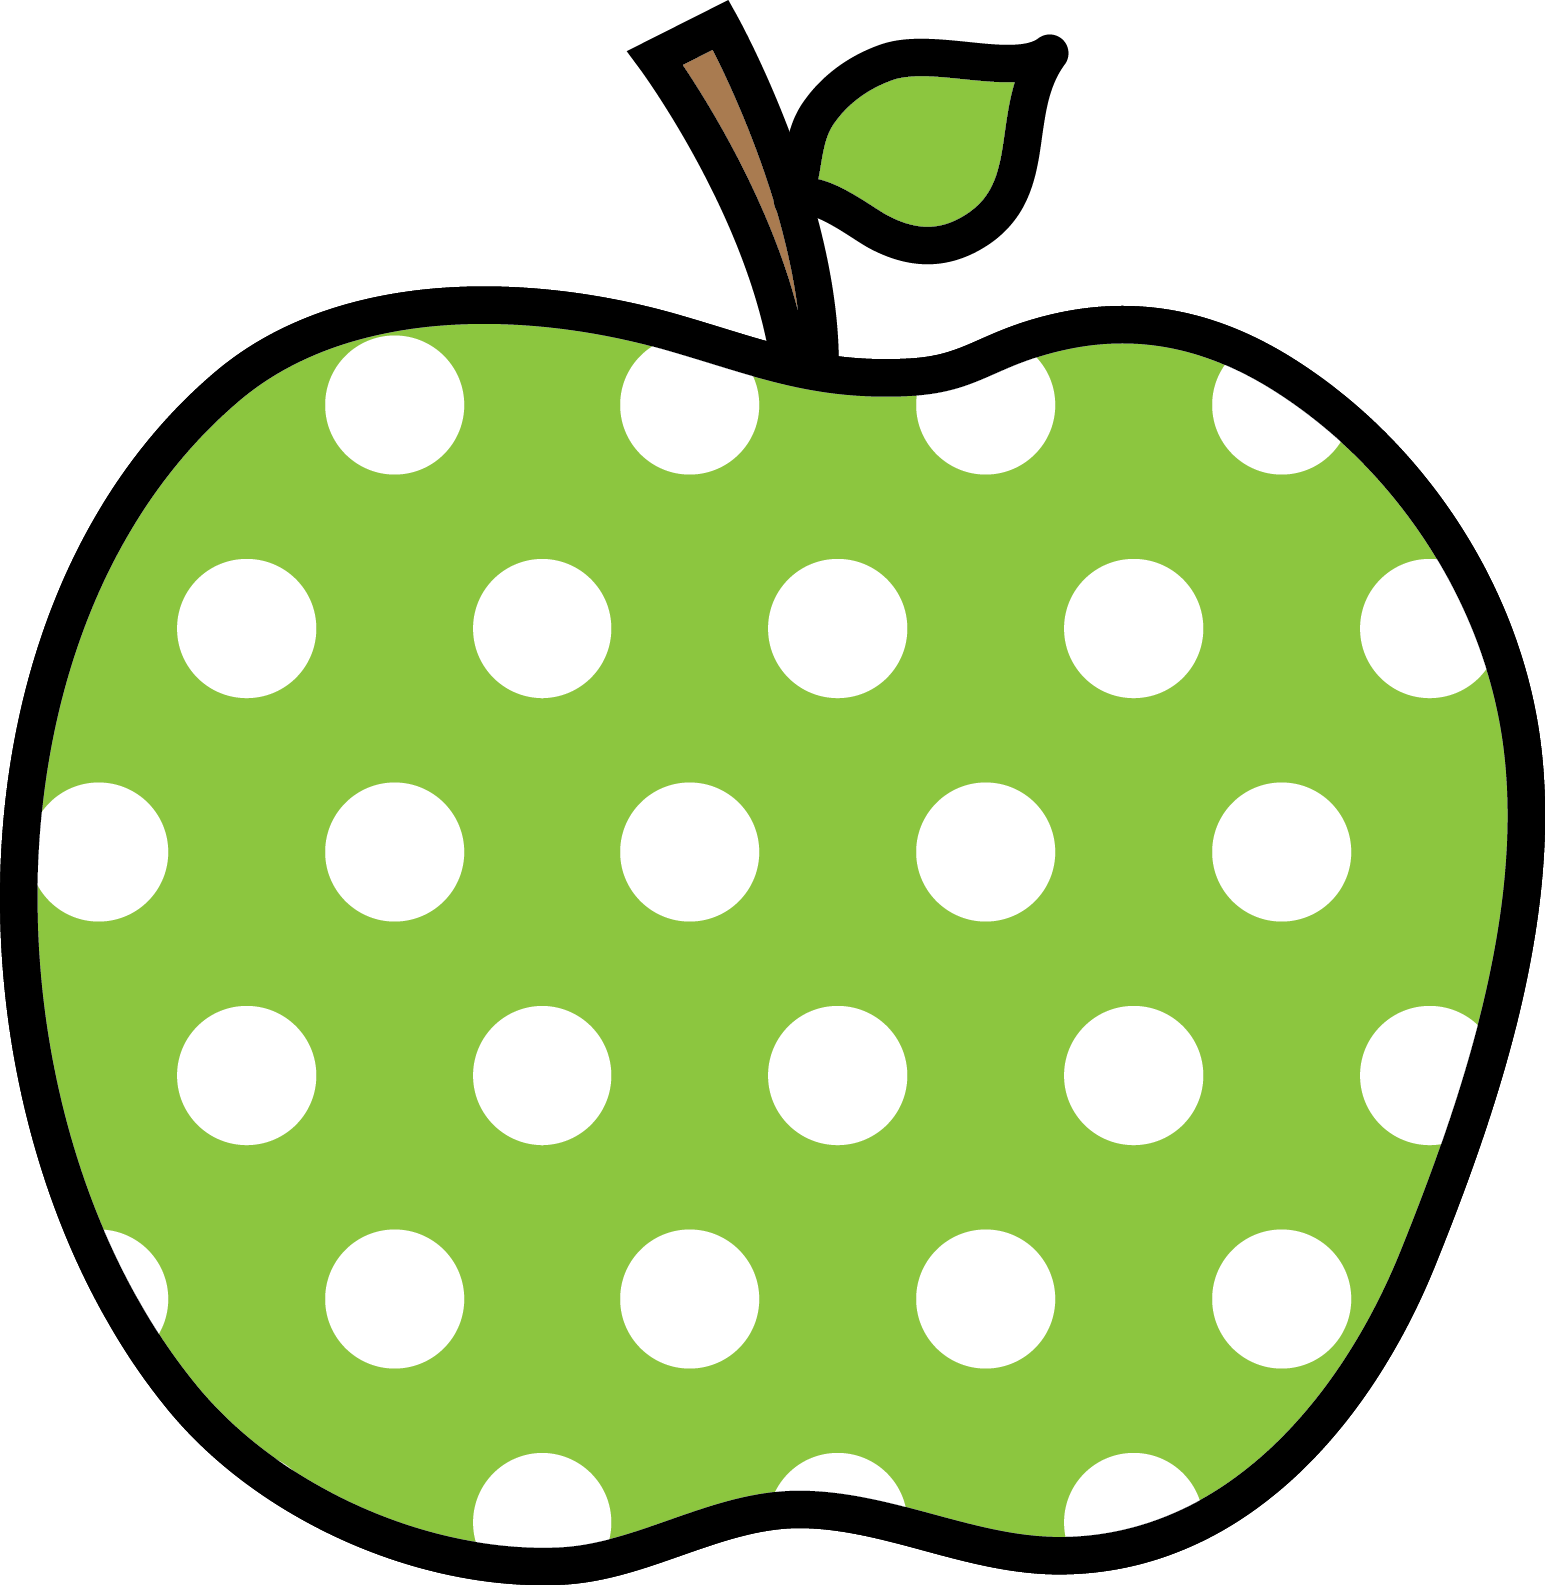 Glitter apple clipart svg free stock 28+ Collection of Polka Dot Apple Clipart | High quality, free ... svg free stock